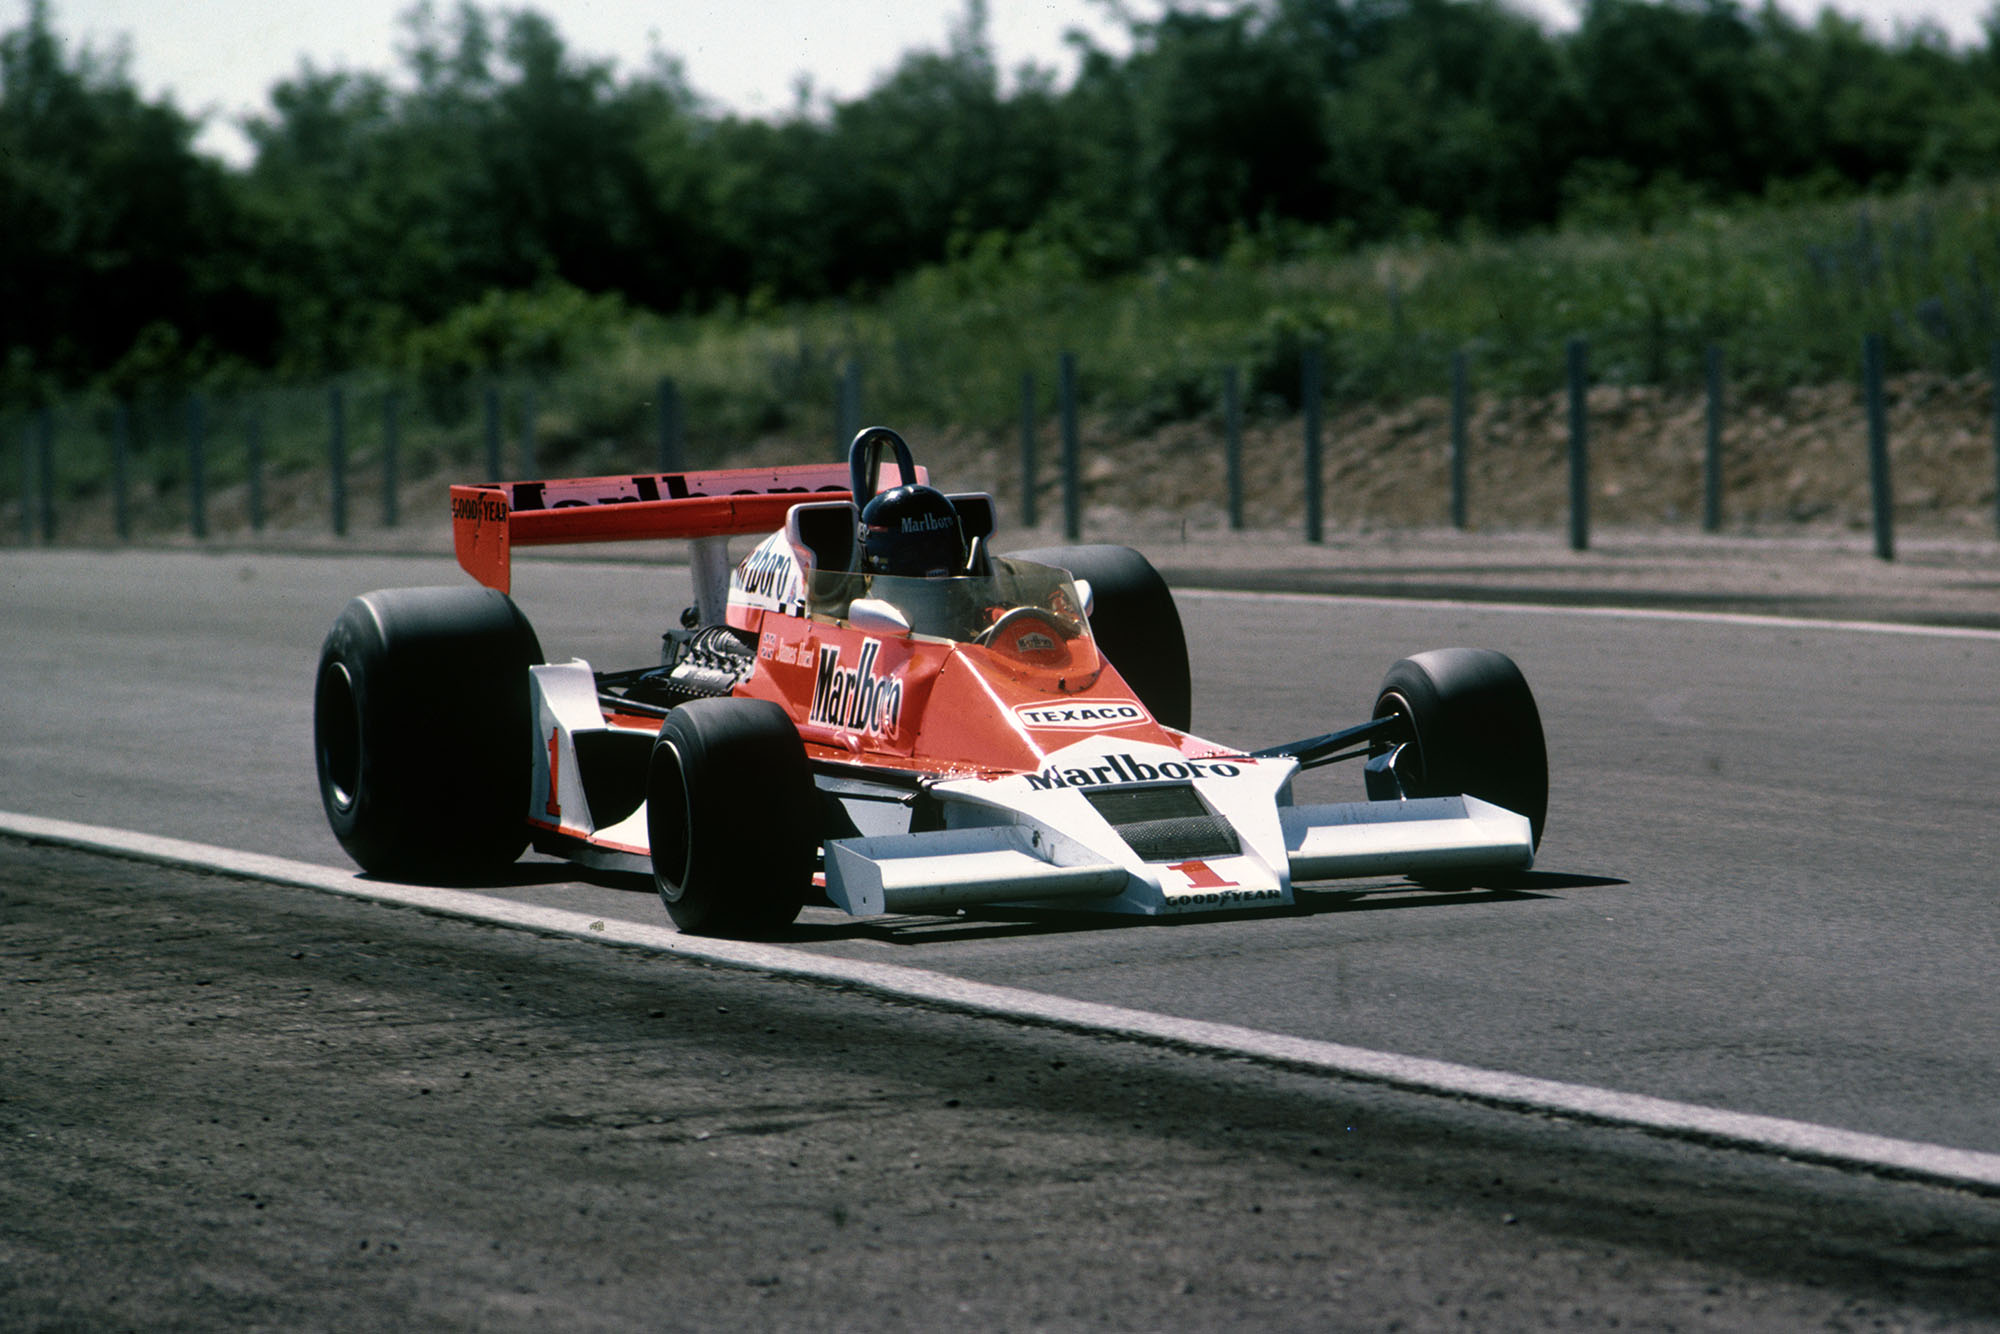 James Hunt (McLaren) at the 1977 French Grand Prix, Dijon.